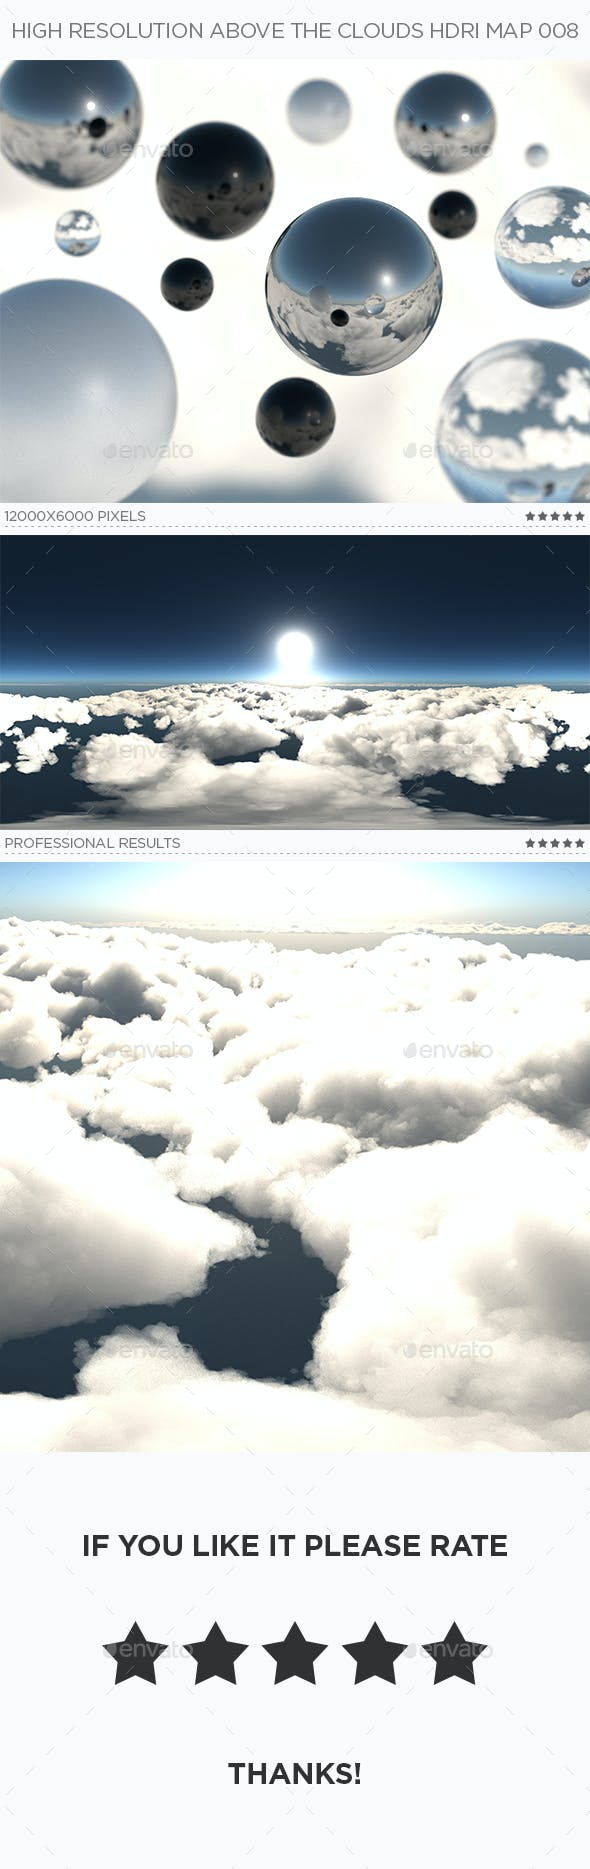 High Resolution Above The Clouds HDRi Map 008 - 3DOcean Item for Sale